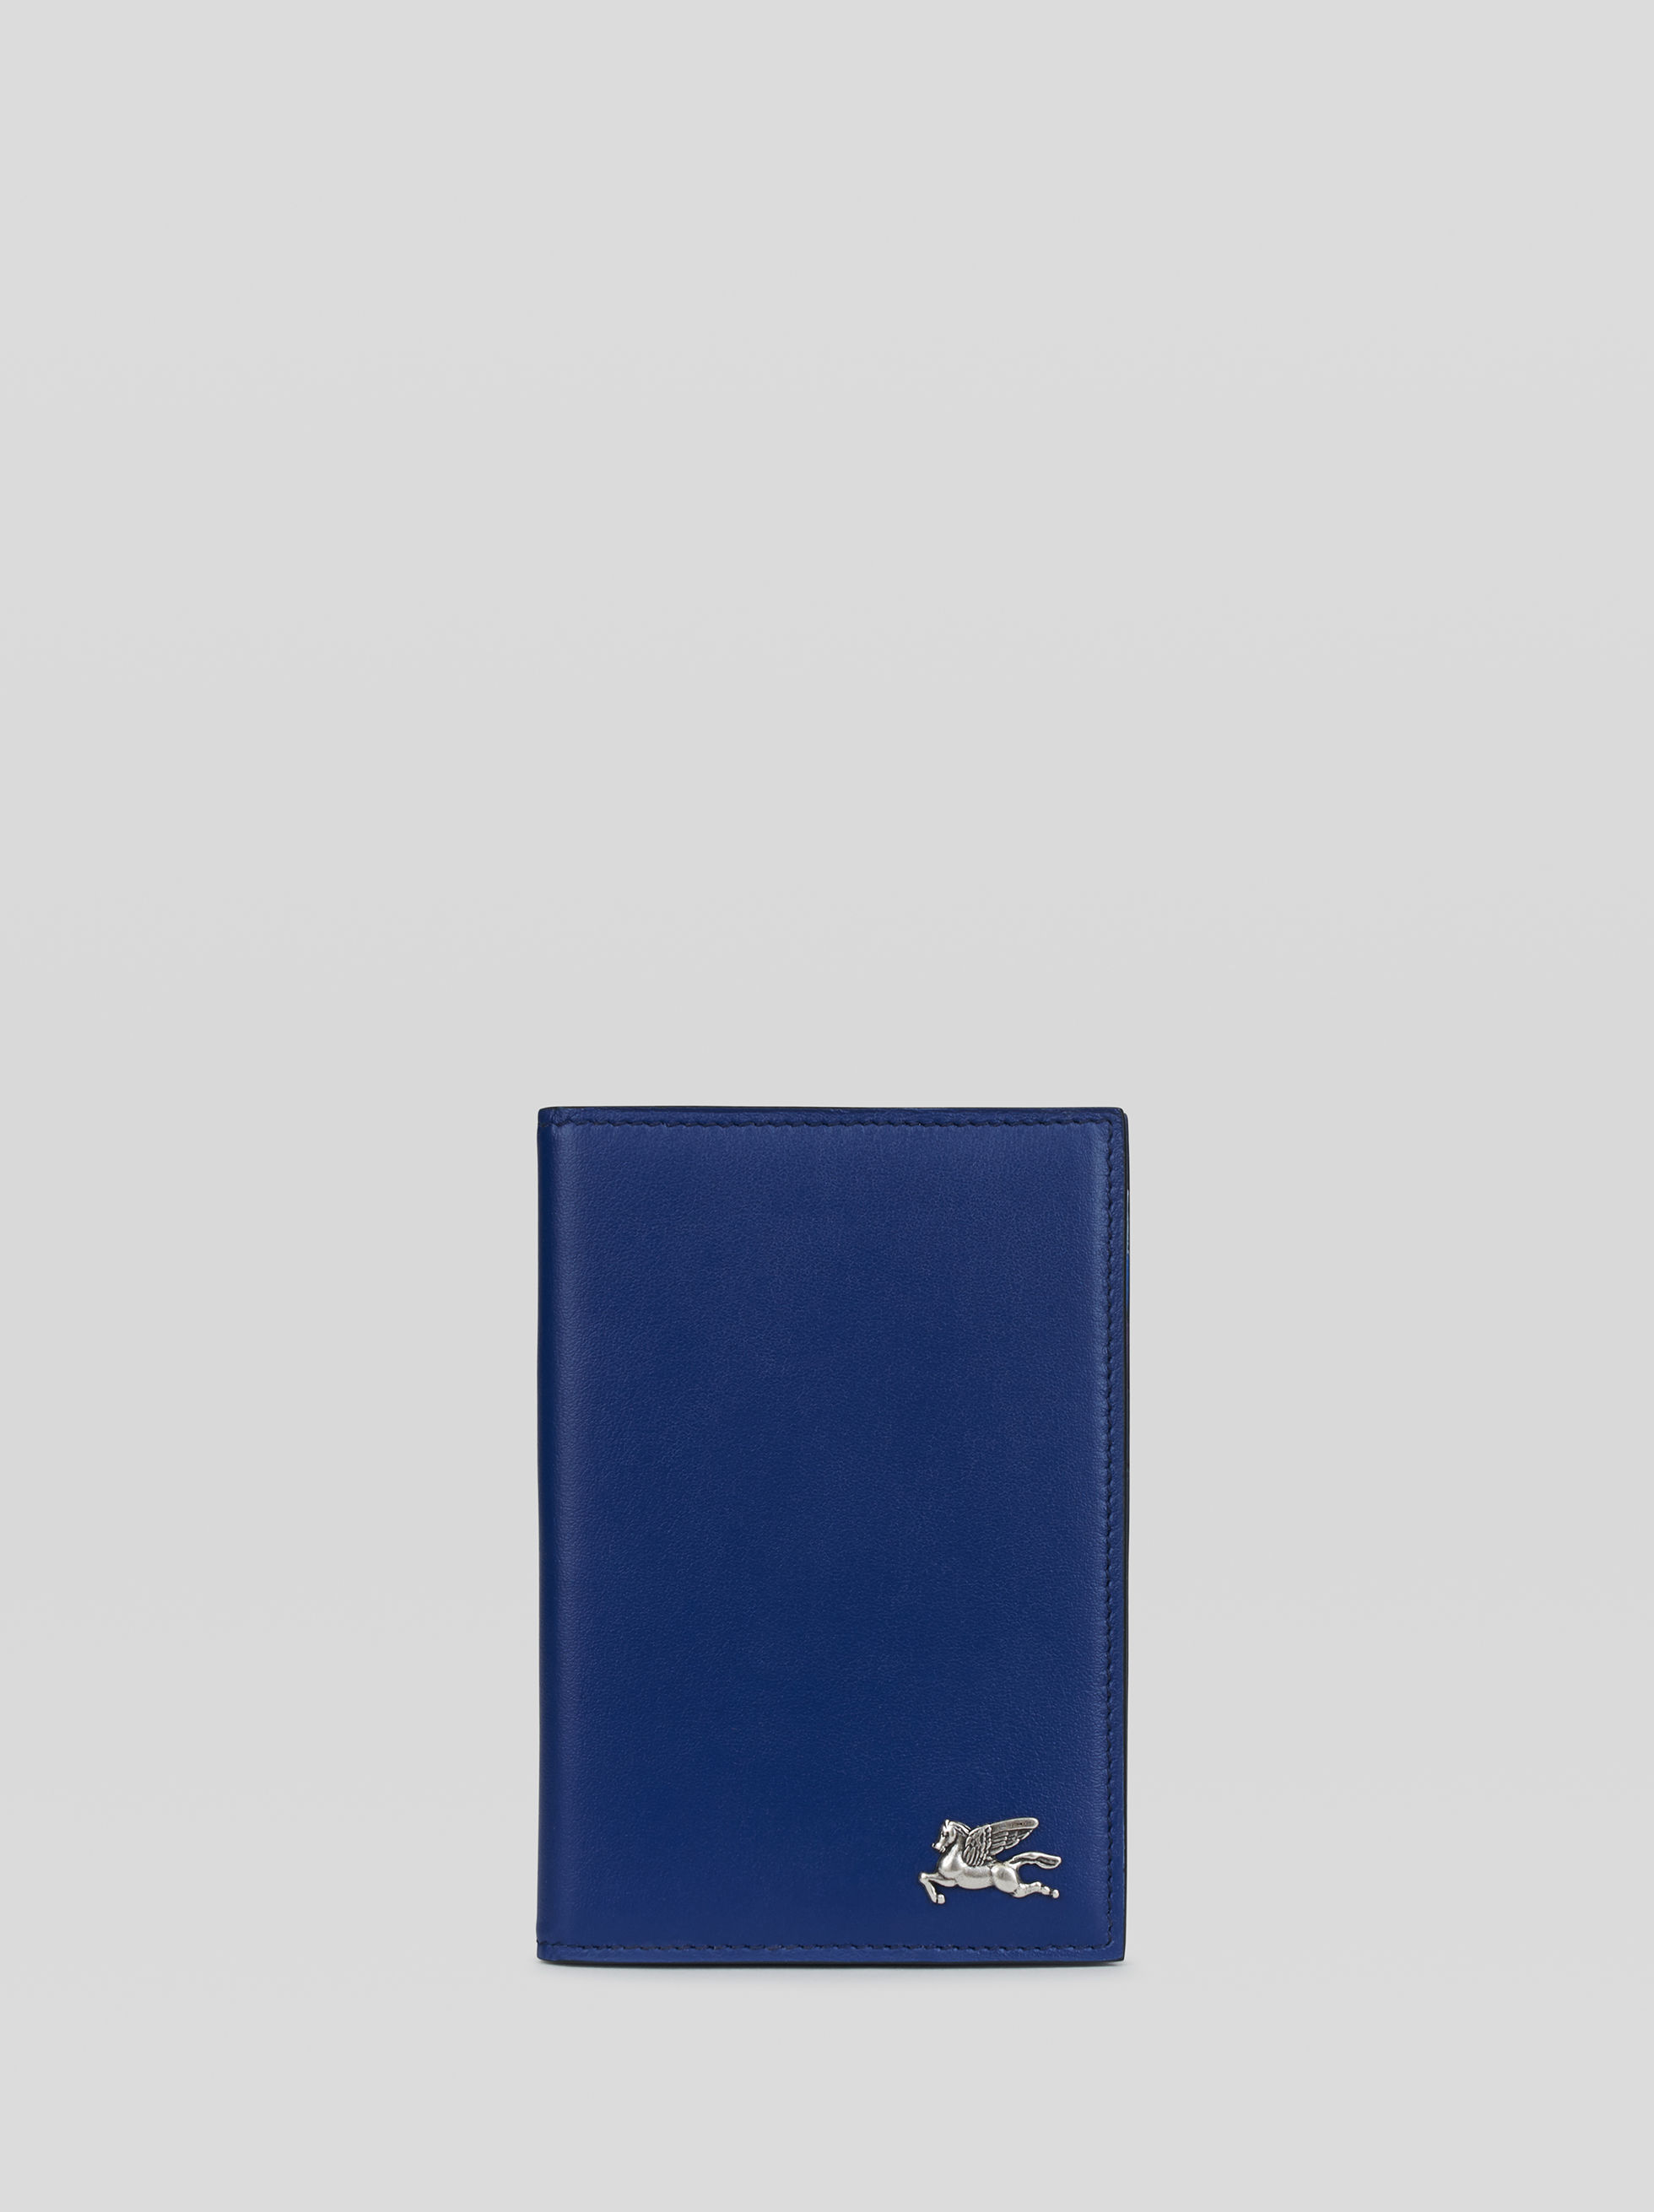 LEATHER DOCUMENT HOLDER WITH PEGASO